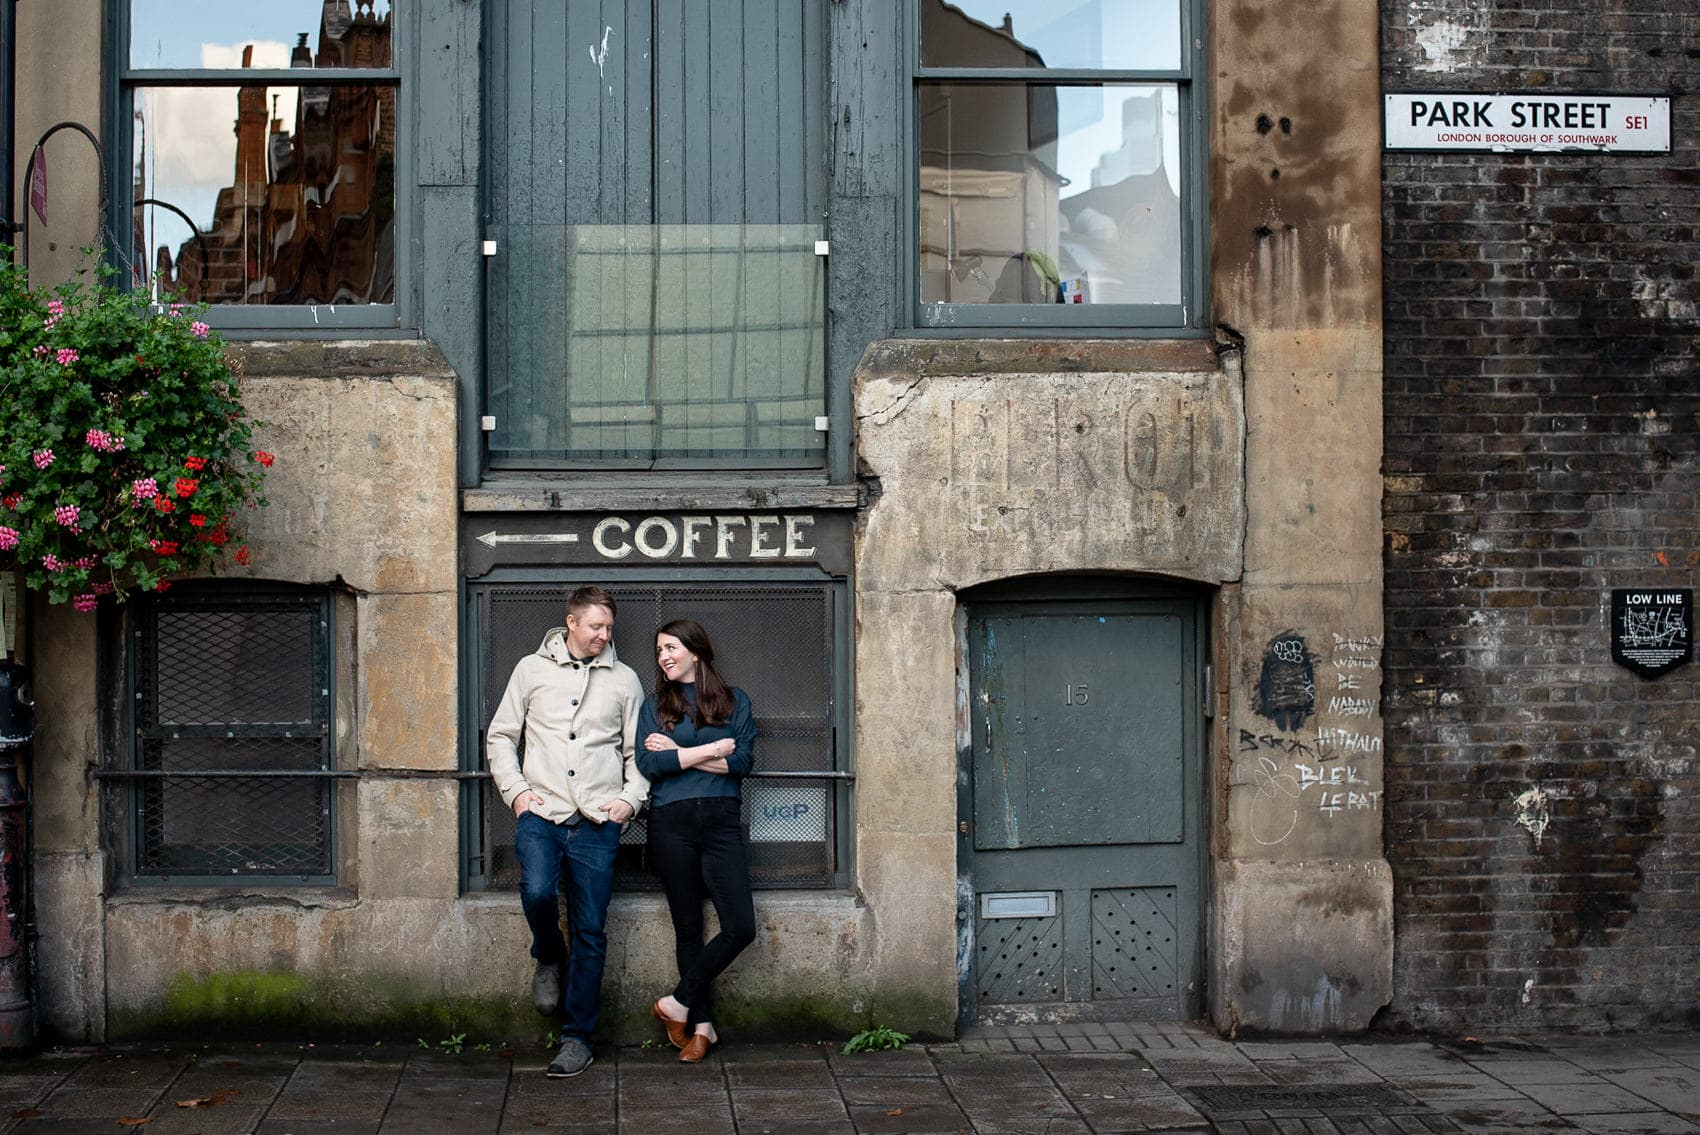 Photo of couple posing on Park Street in front of scene from movie Lock Stock and Two Smoking Barrels